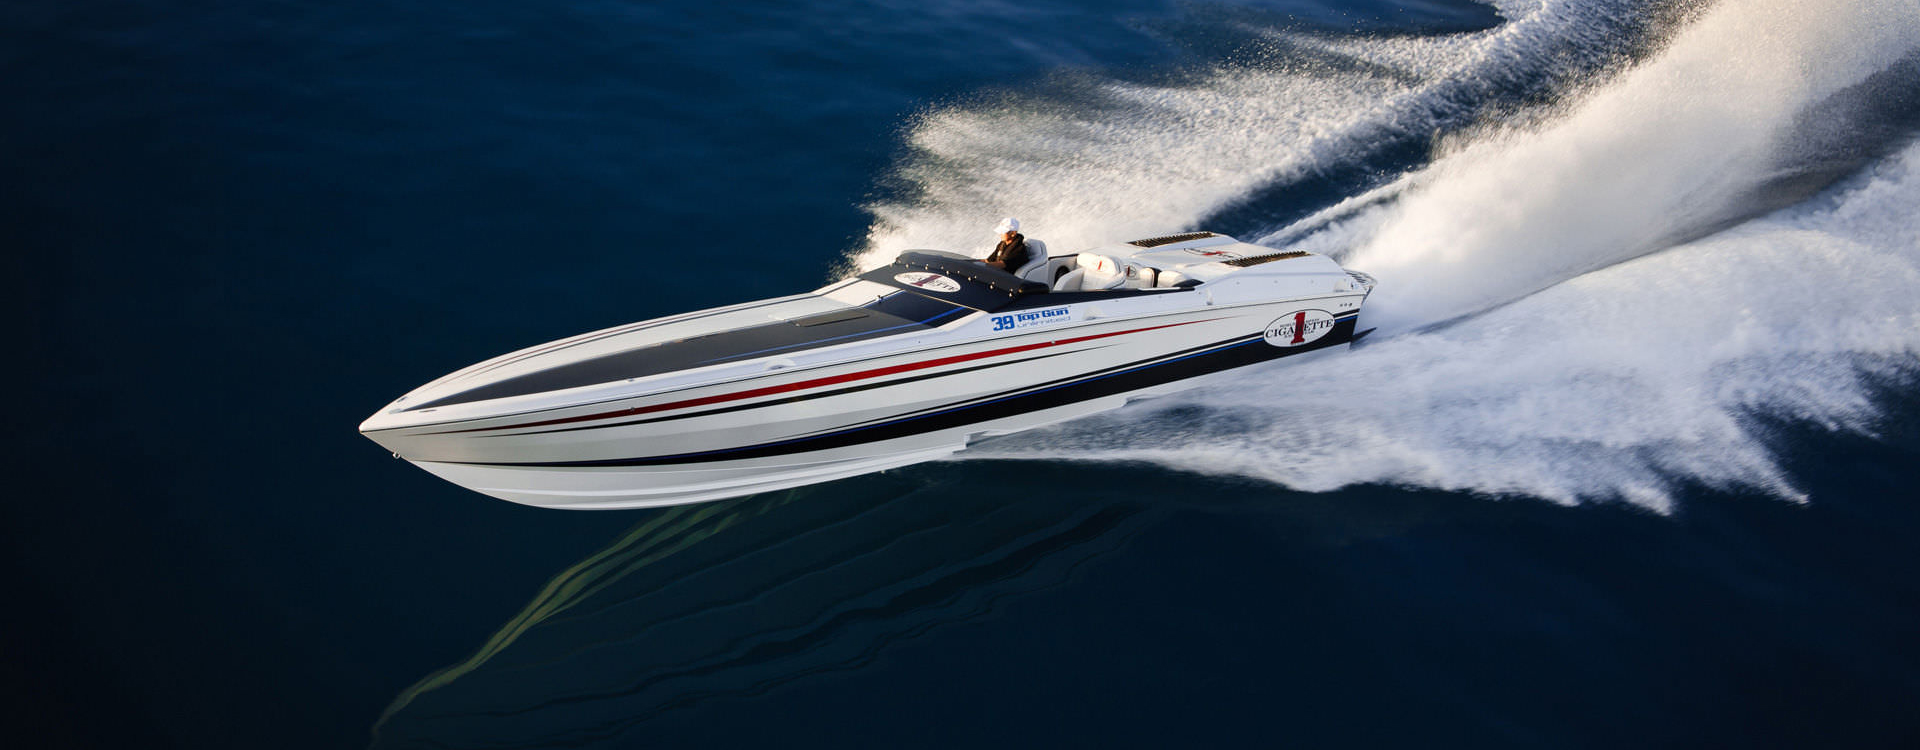 Speedboat wallpaper